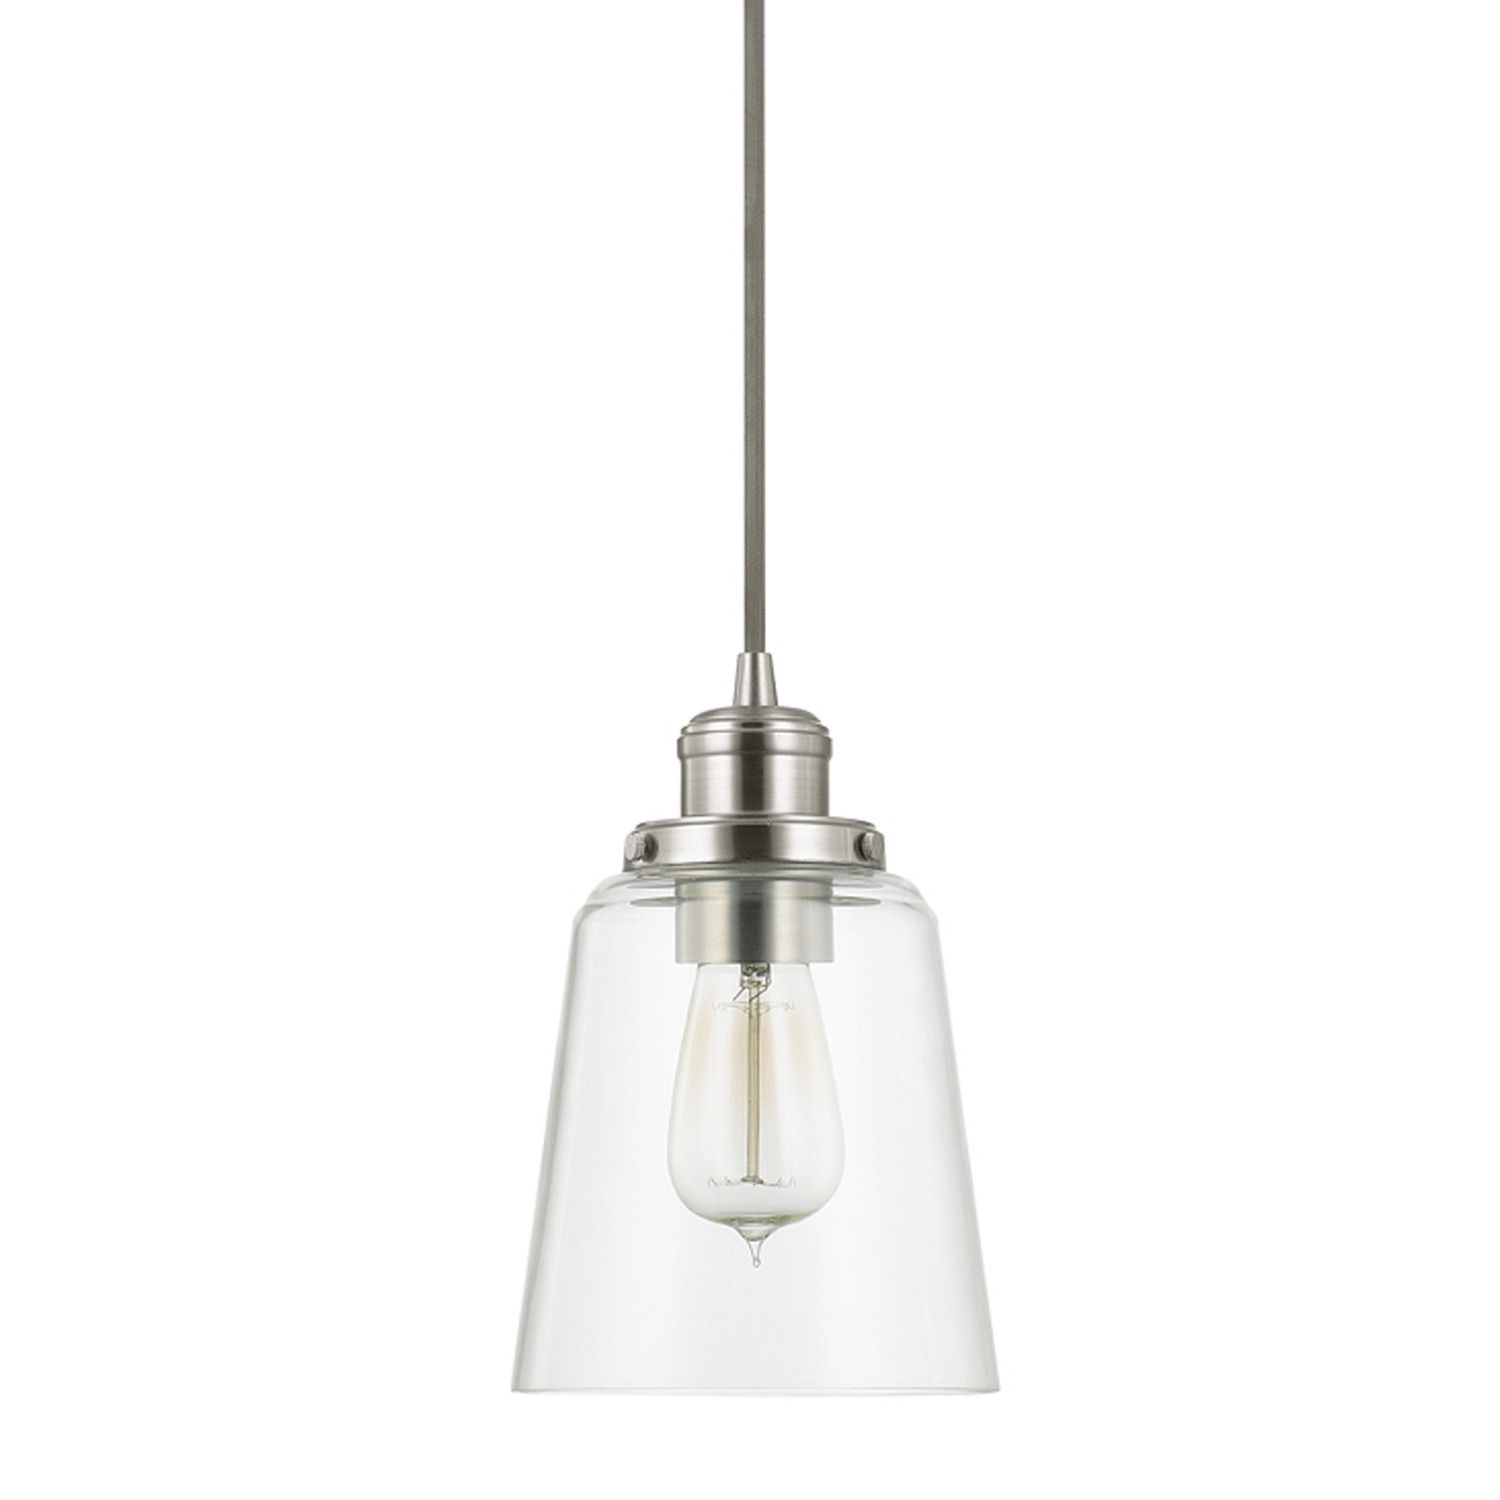 Pendant Lighting Brushed Nickel Capital Lighting 3718bn 135 Brushed Nickel Mini Pendant